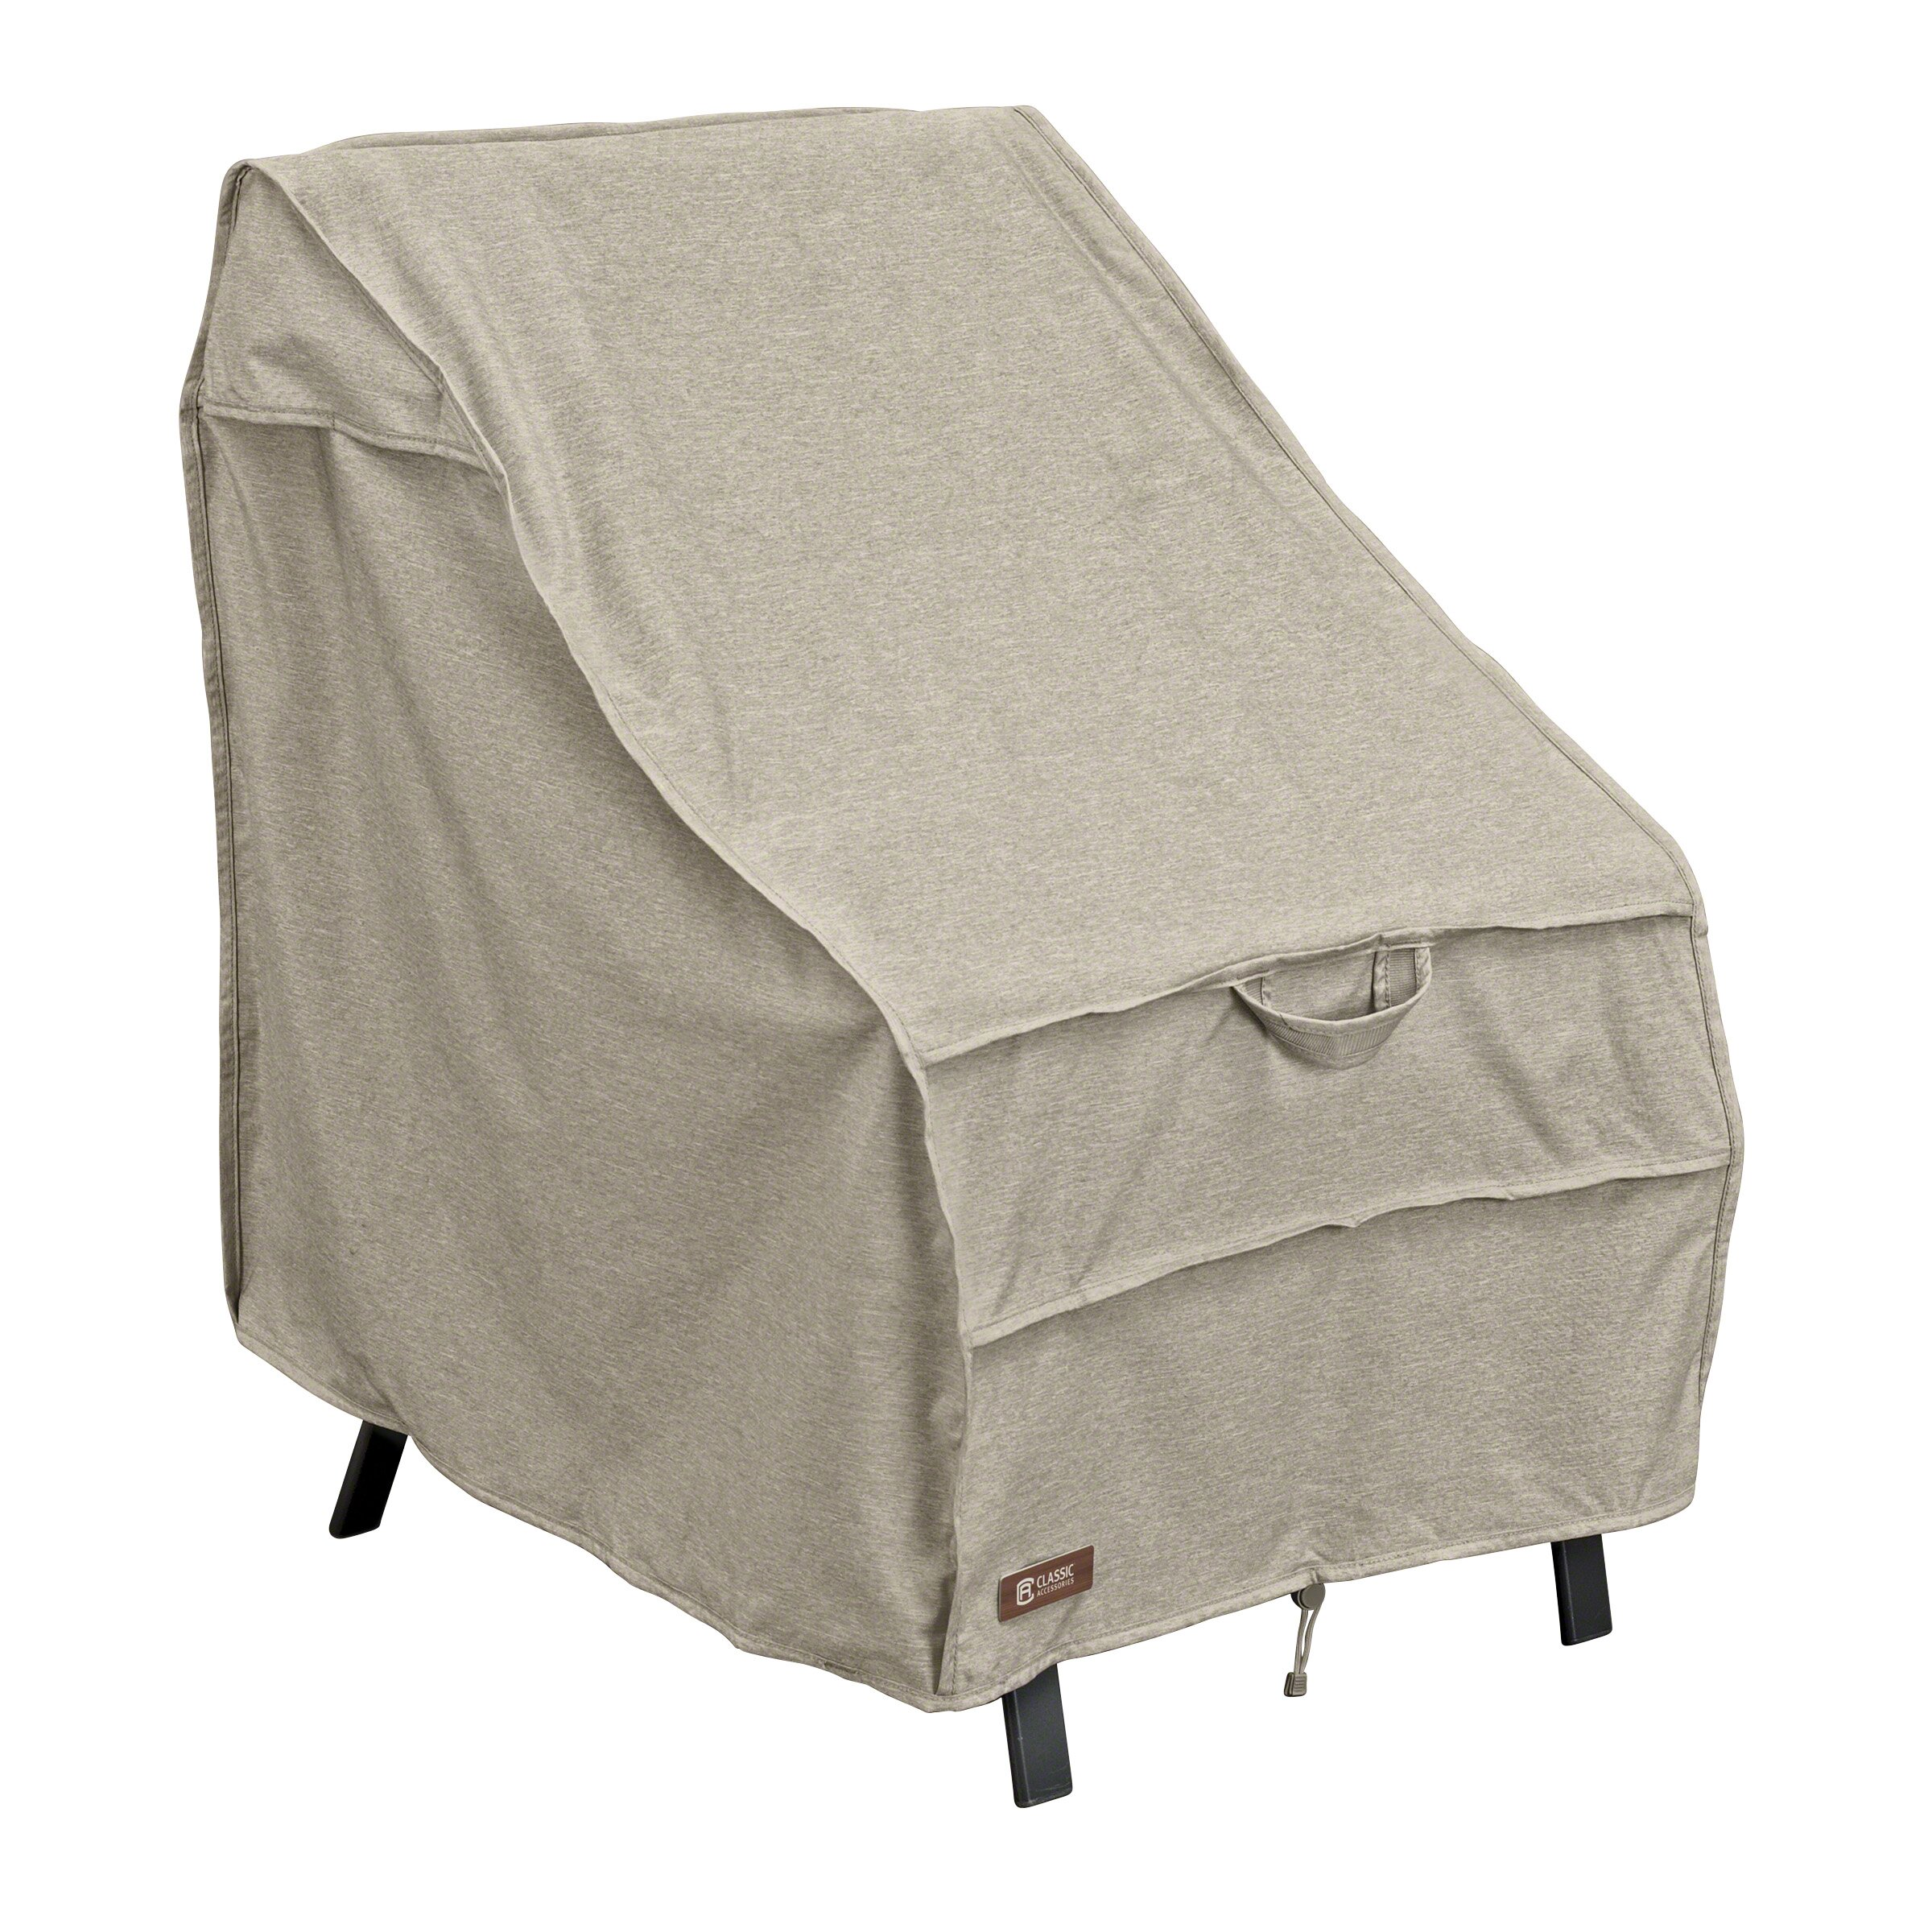 Classic Accessories Montlake Chair Cover